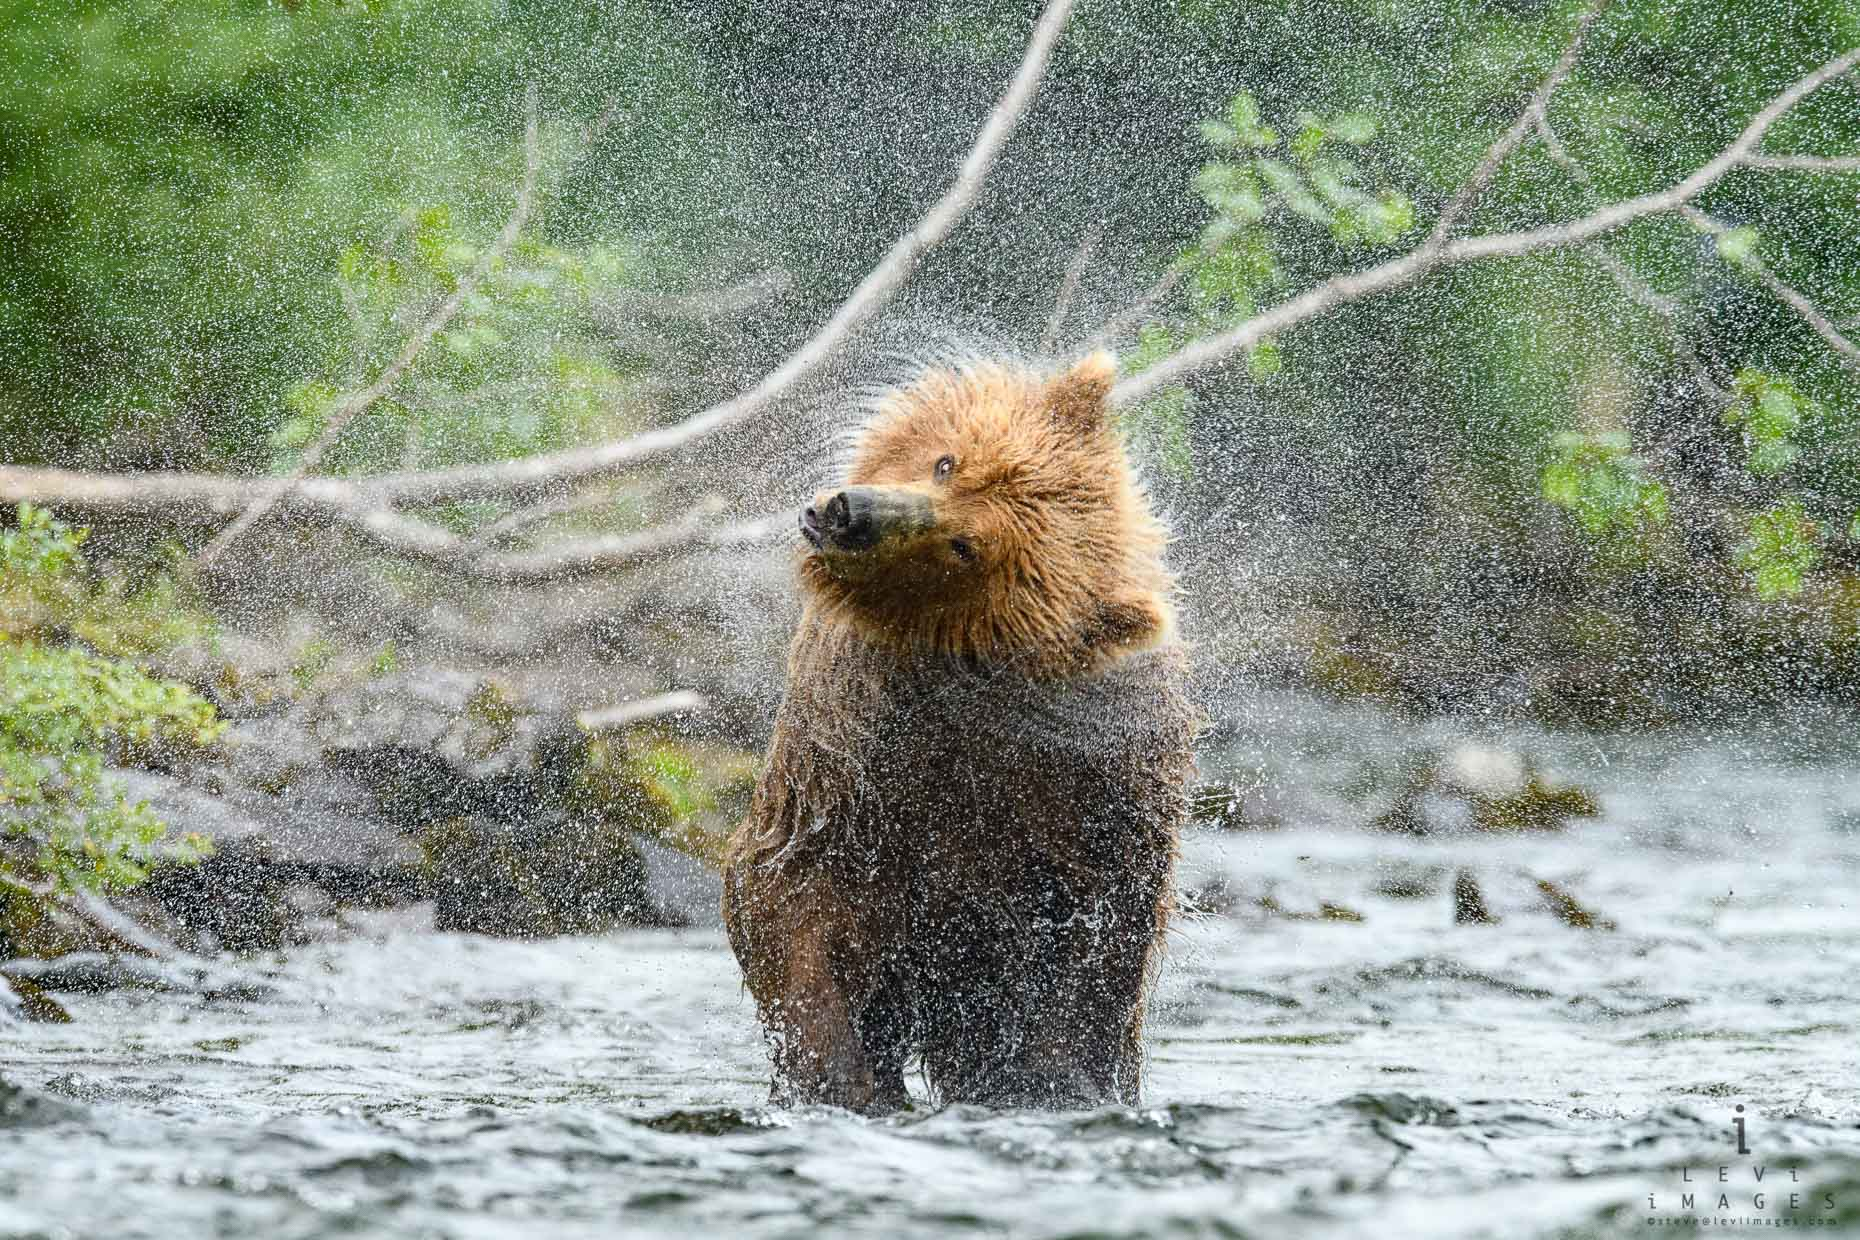 Brown bear (Ursus arctos) shakes water off creating a spray pattern. Katmai, Alaska